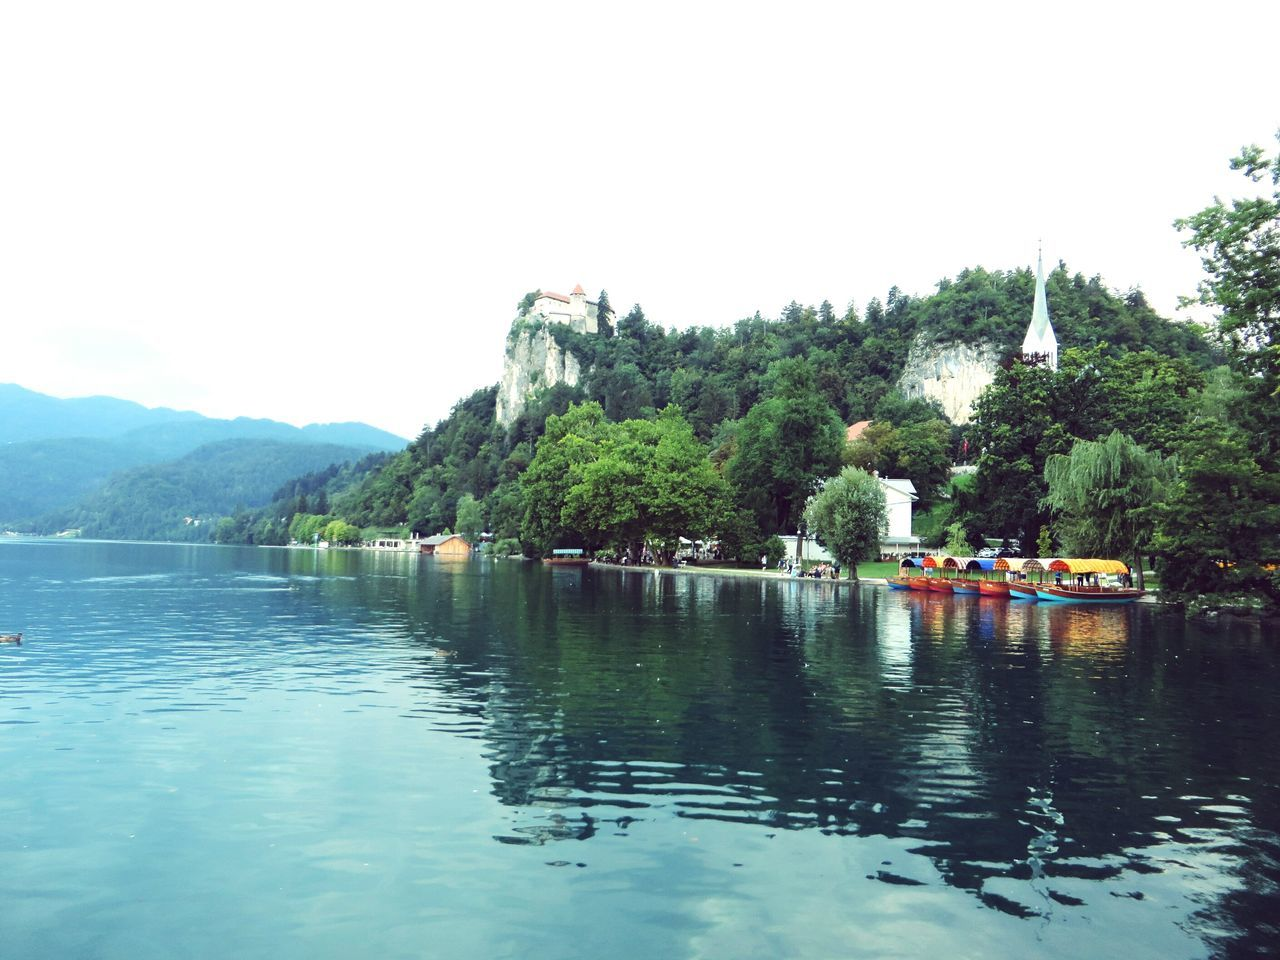 water, tree, mountain, lake, clear sky, nature, waterfront, day, beauty in nature, outdoors, scenics, sky, built structure, real people, architecture